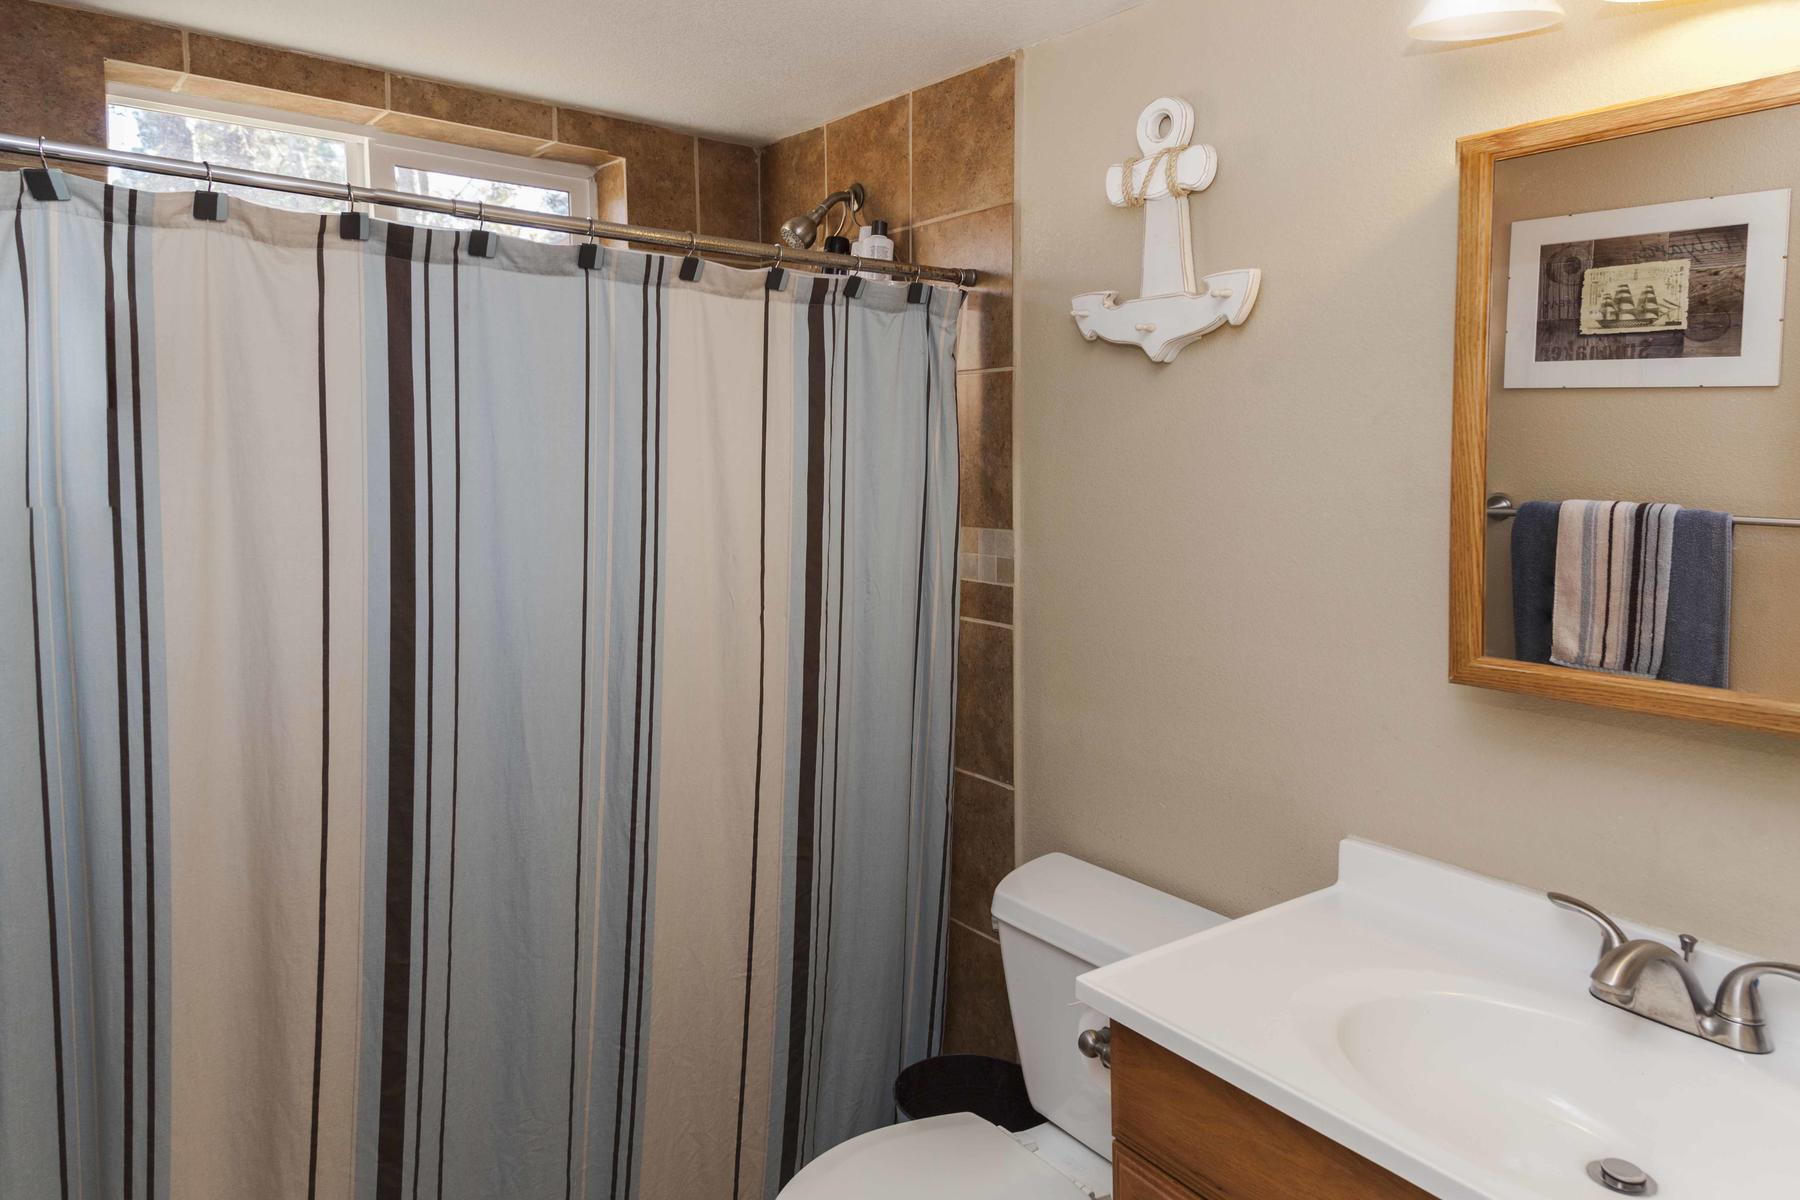 Additional photo for property listing at This Home Looks Like It Has Never Been Lived In! 11488 Larson Ln Northglenn, Colorado 80233 United States